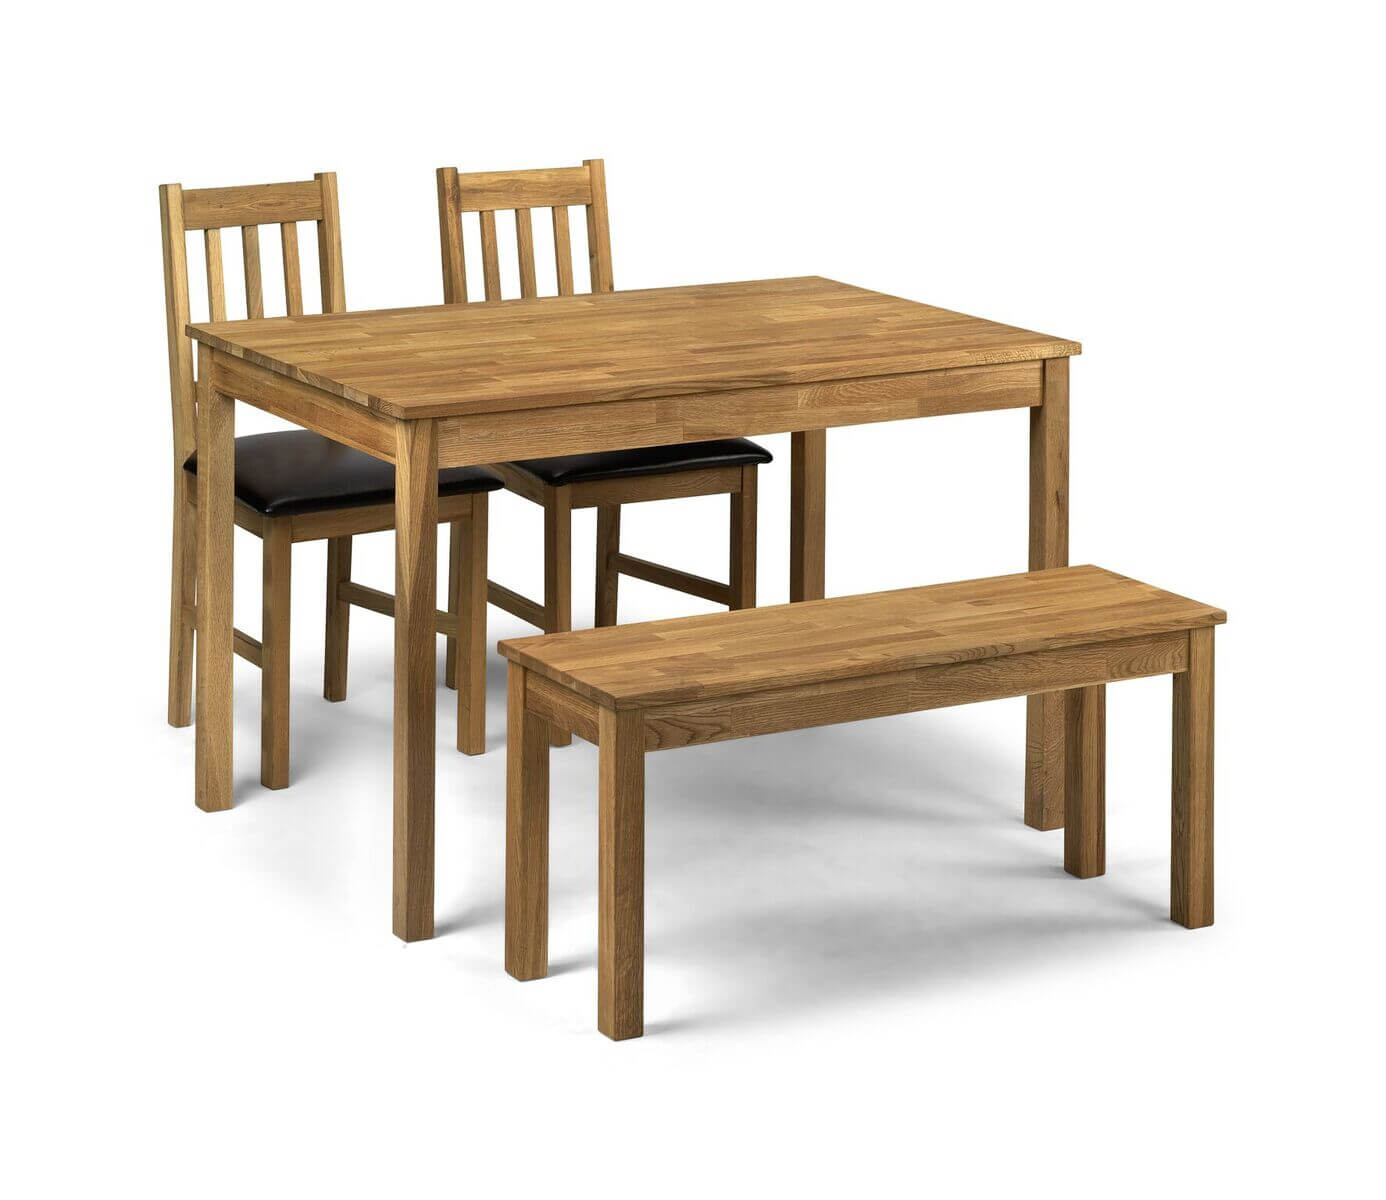 Coxmoor Table with Bench and 2 Chairs